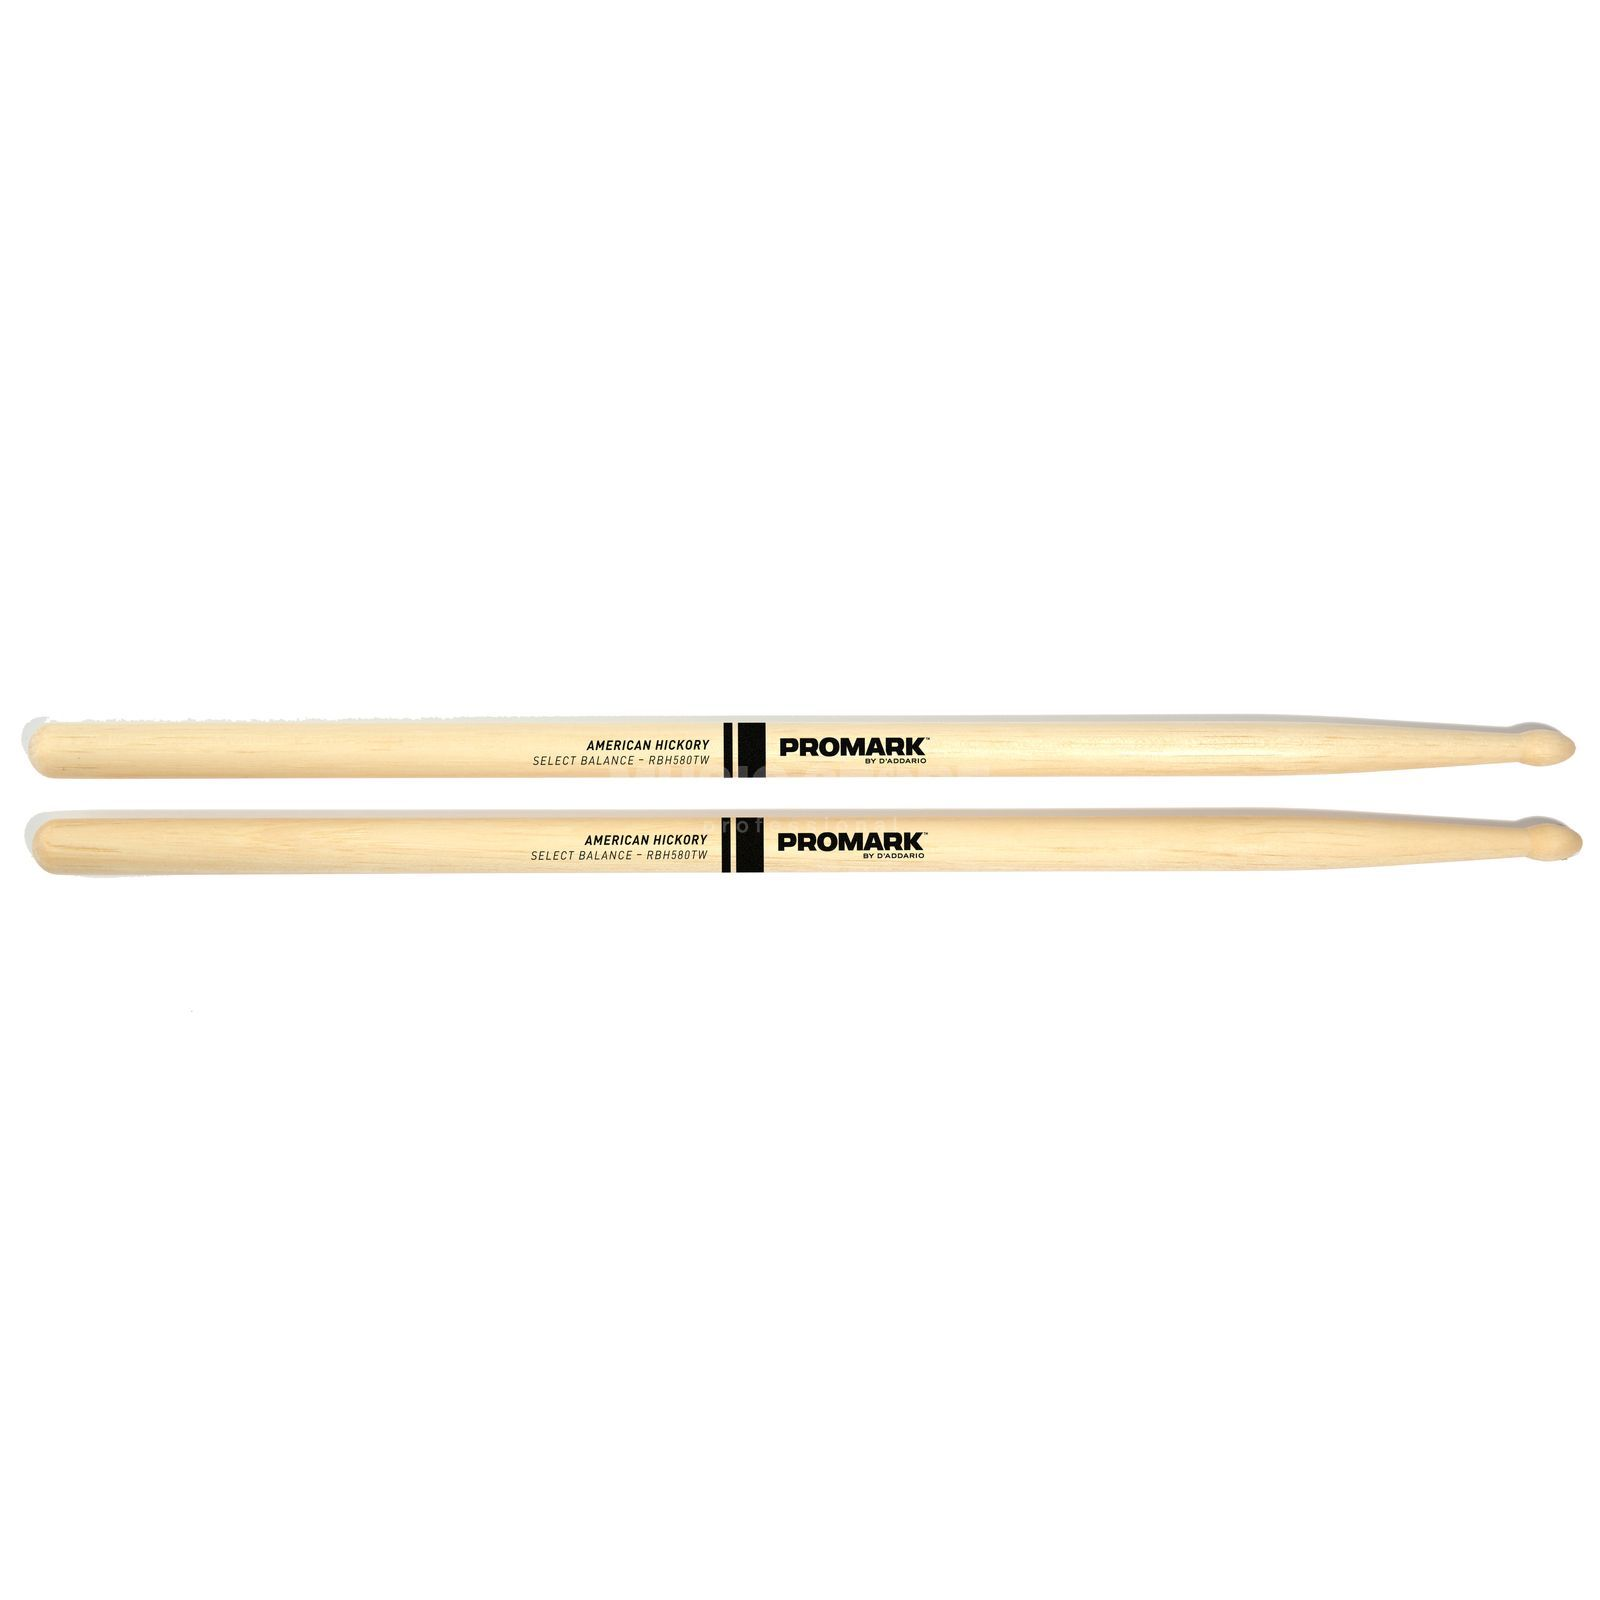 PRO-MARK Select Balance Sticks RBH580TW Rebound Balance, Wood Tip Produktbild